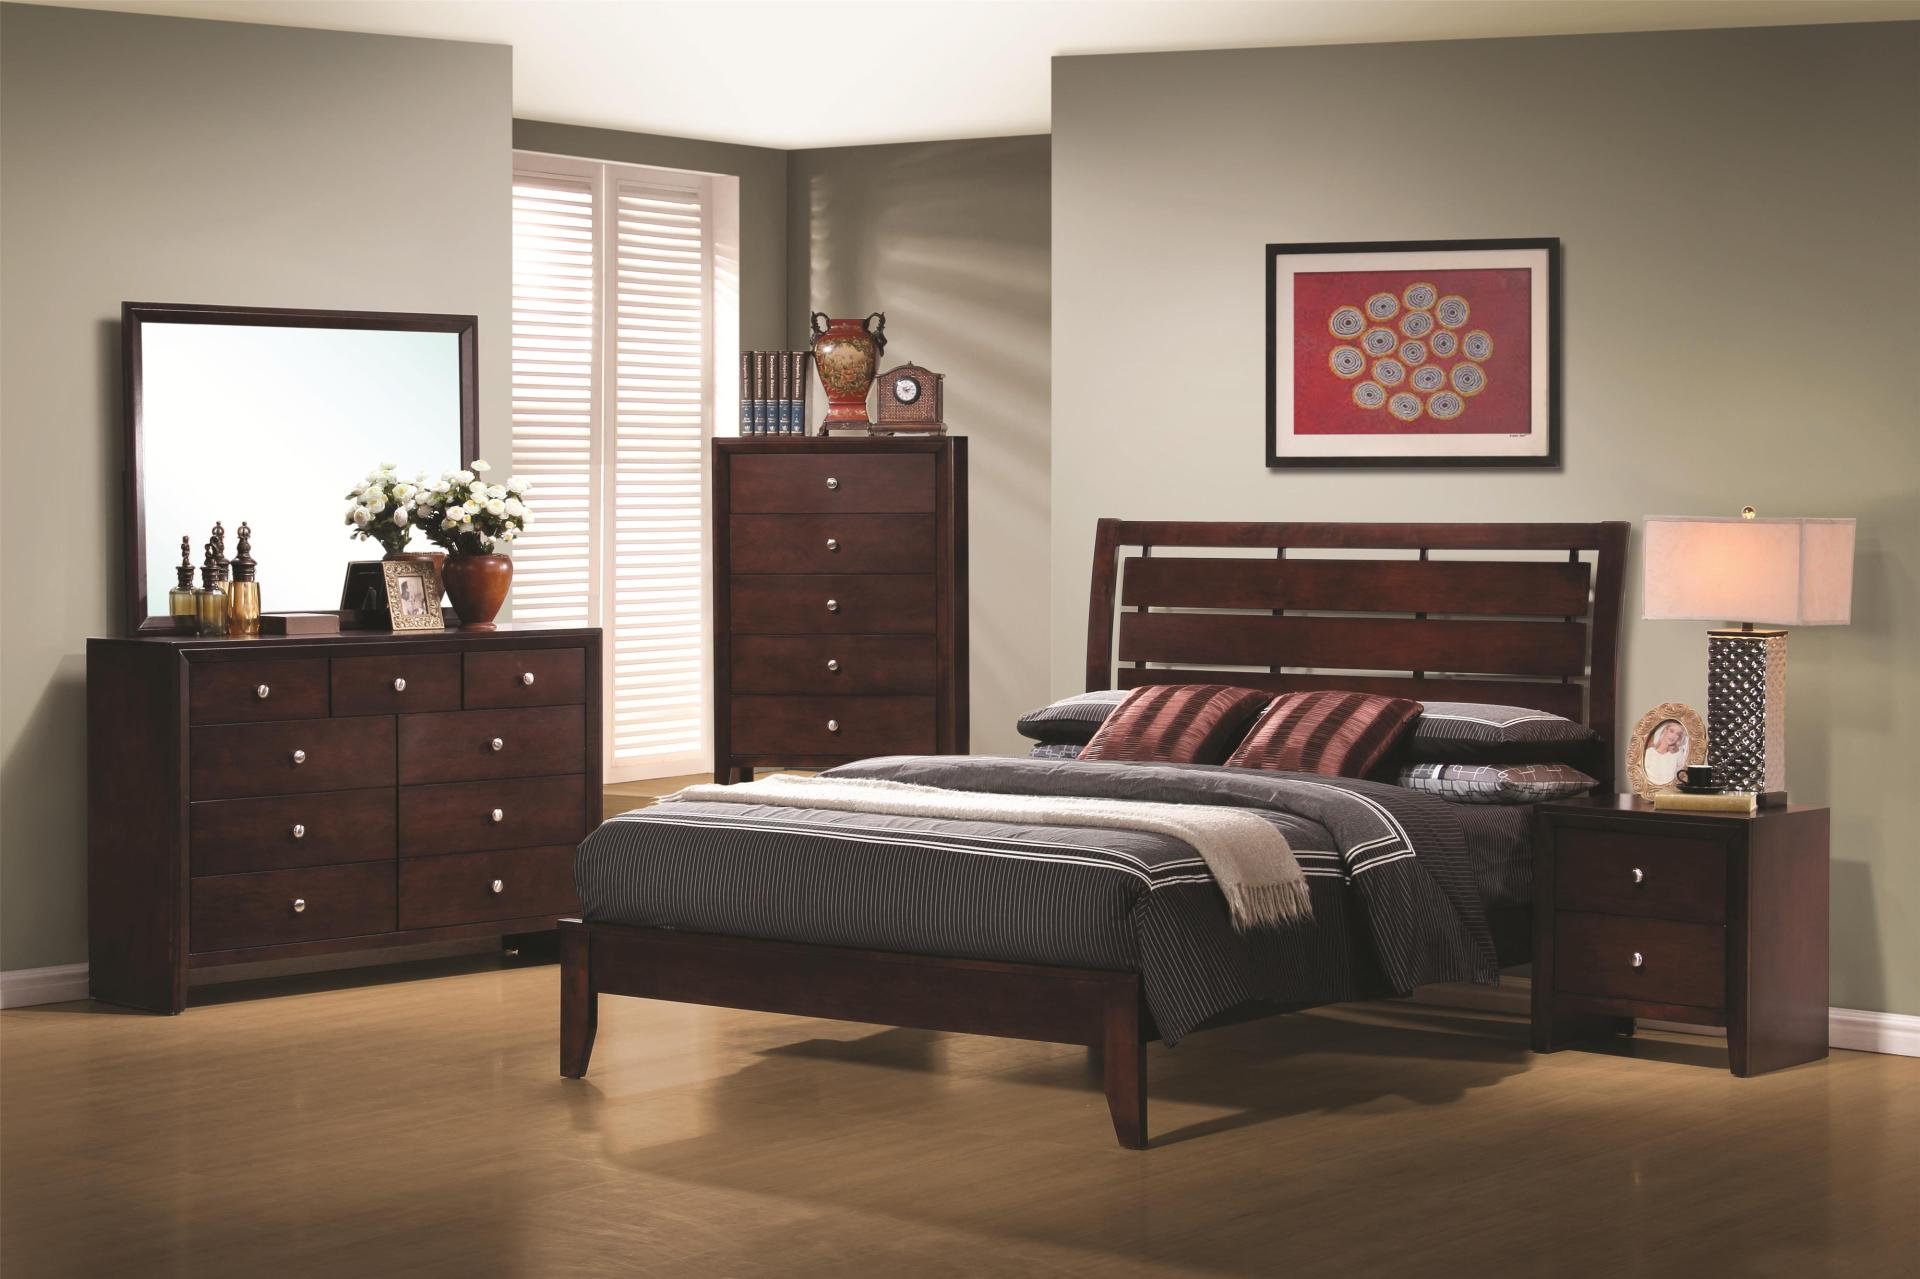 serenity bedroom set, warm brown finish, slatted headboard, open foot board, dove tailed drawers